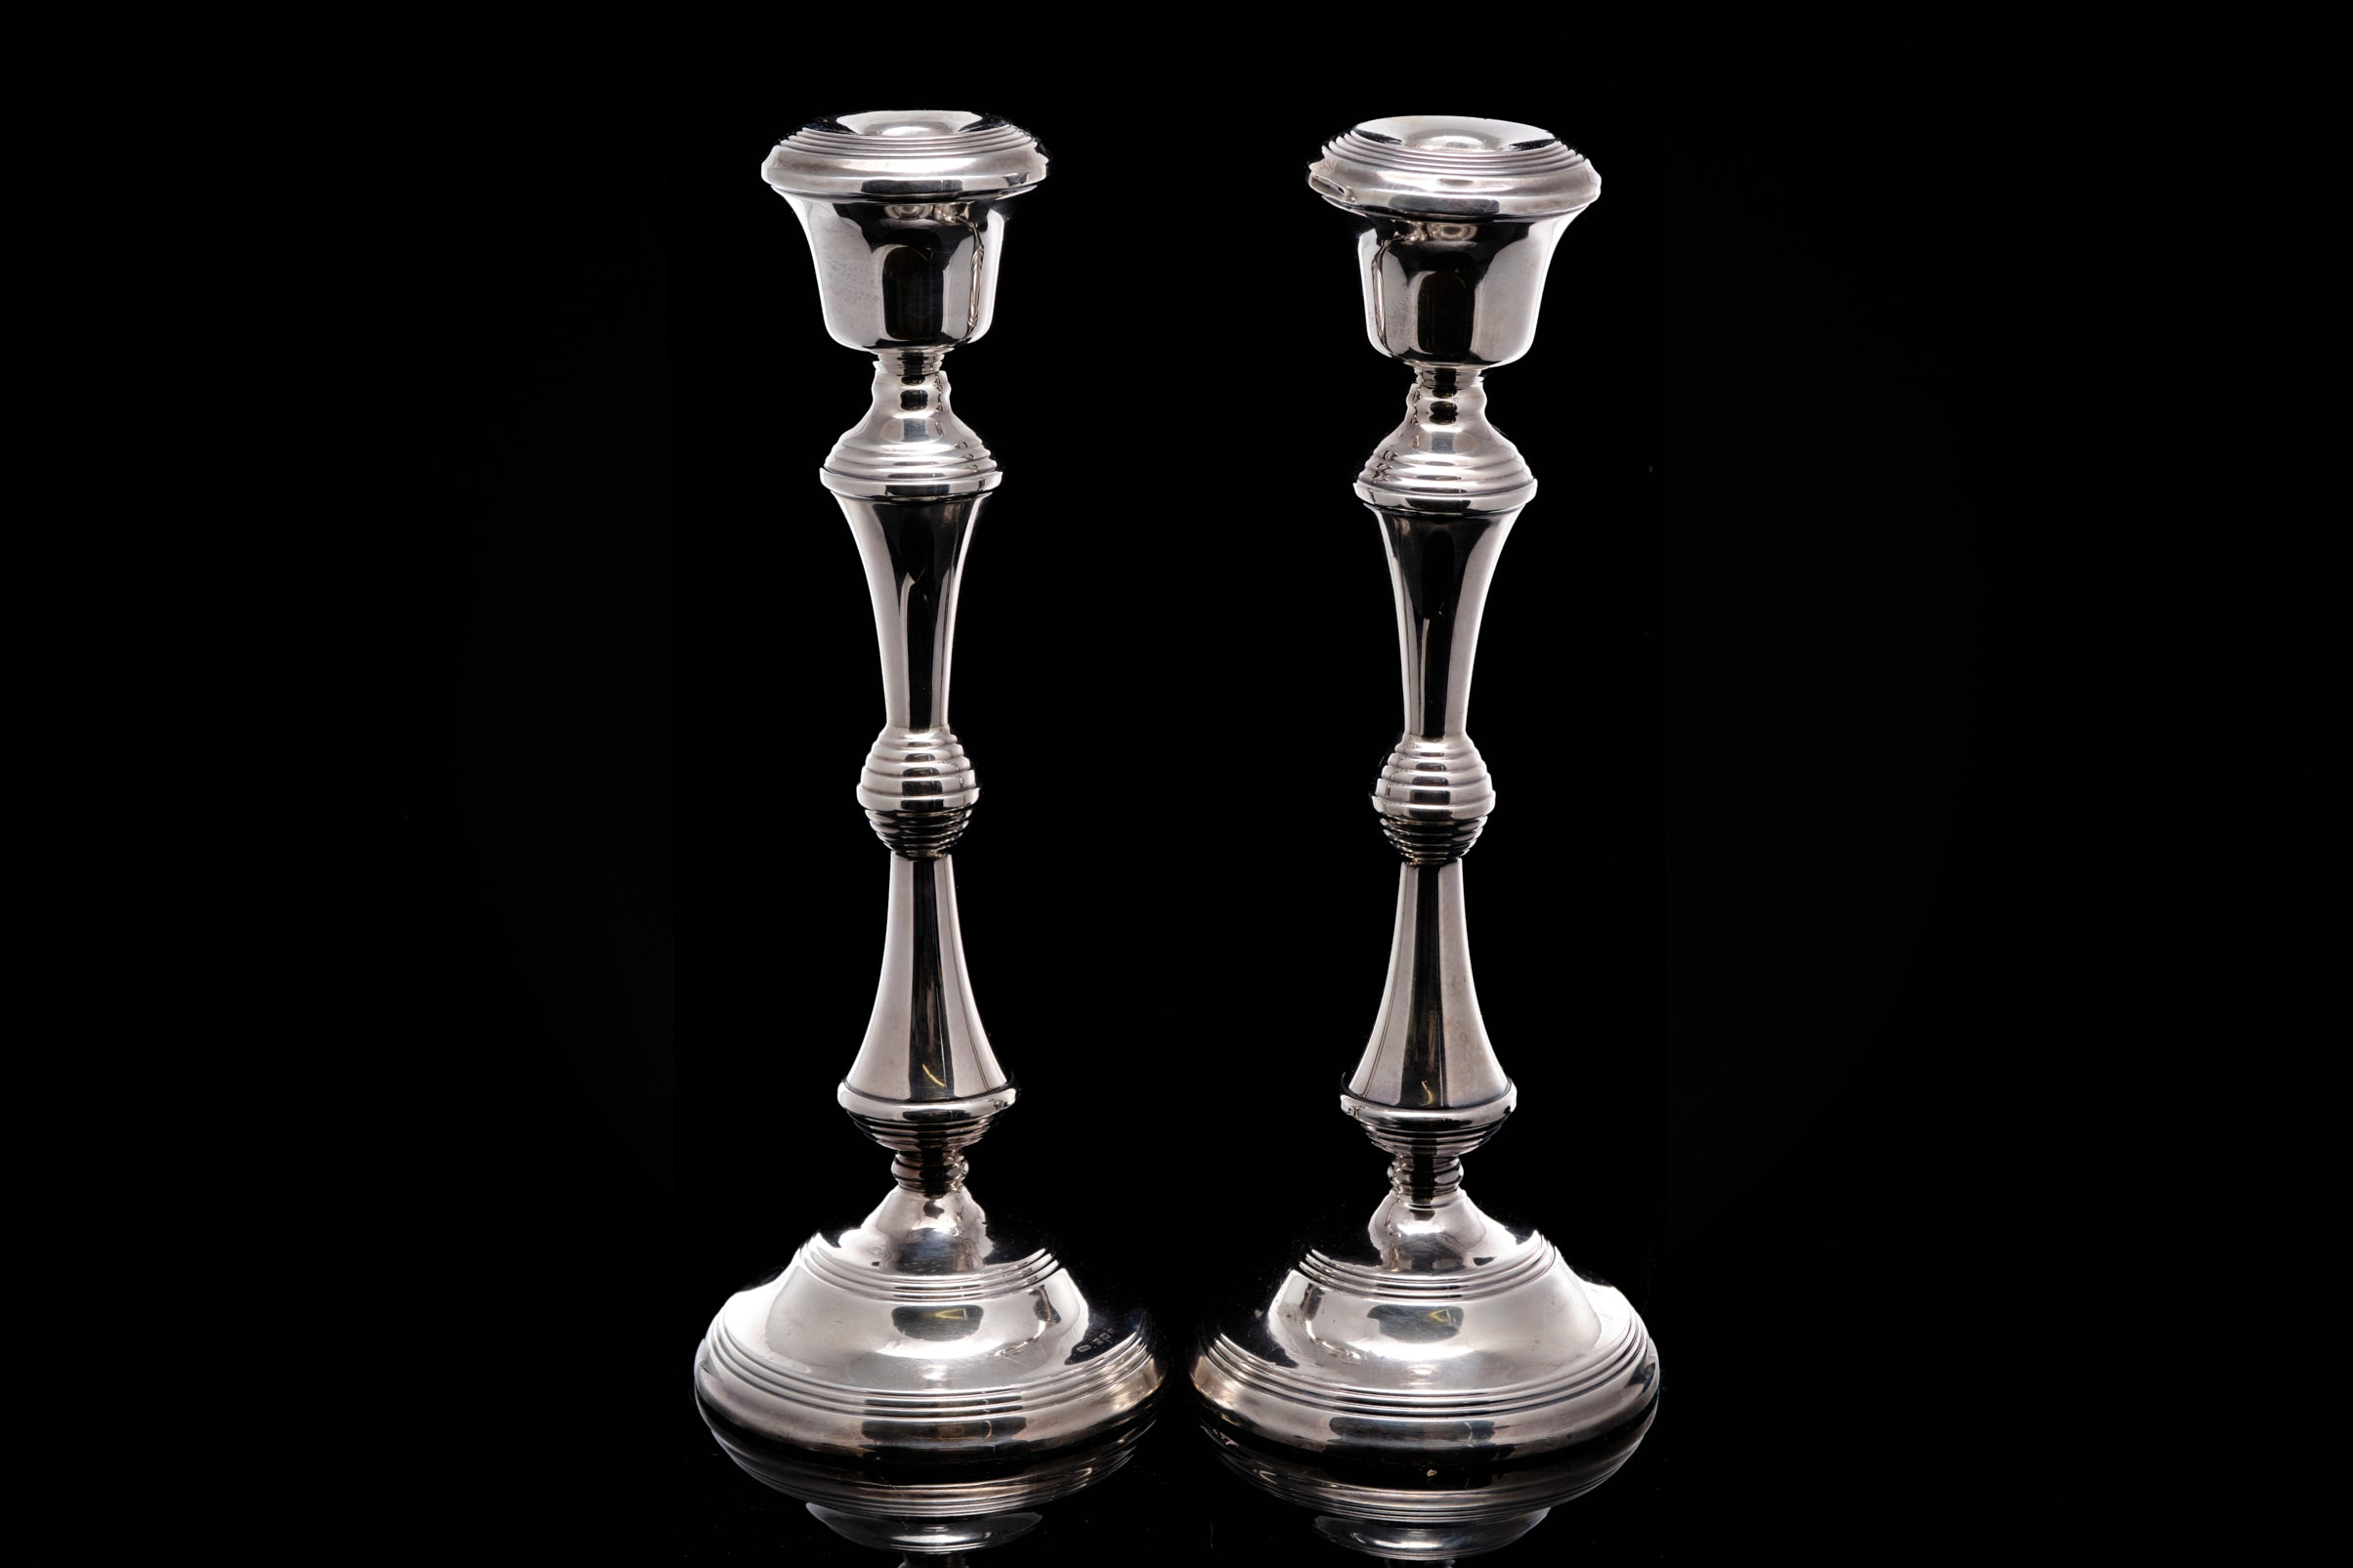 C1970 Sterling Silver Candlesticks.